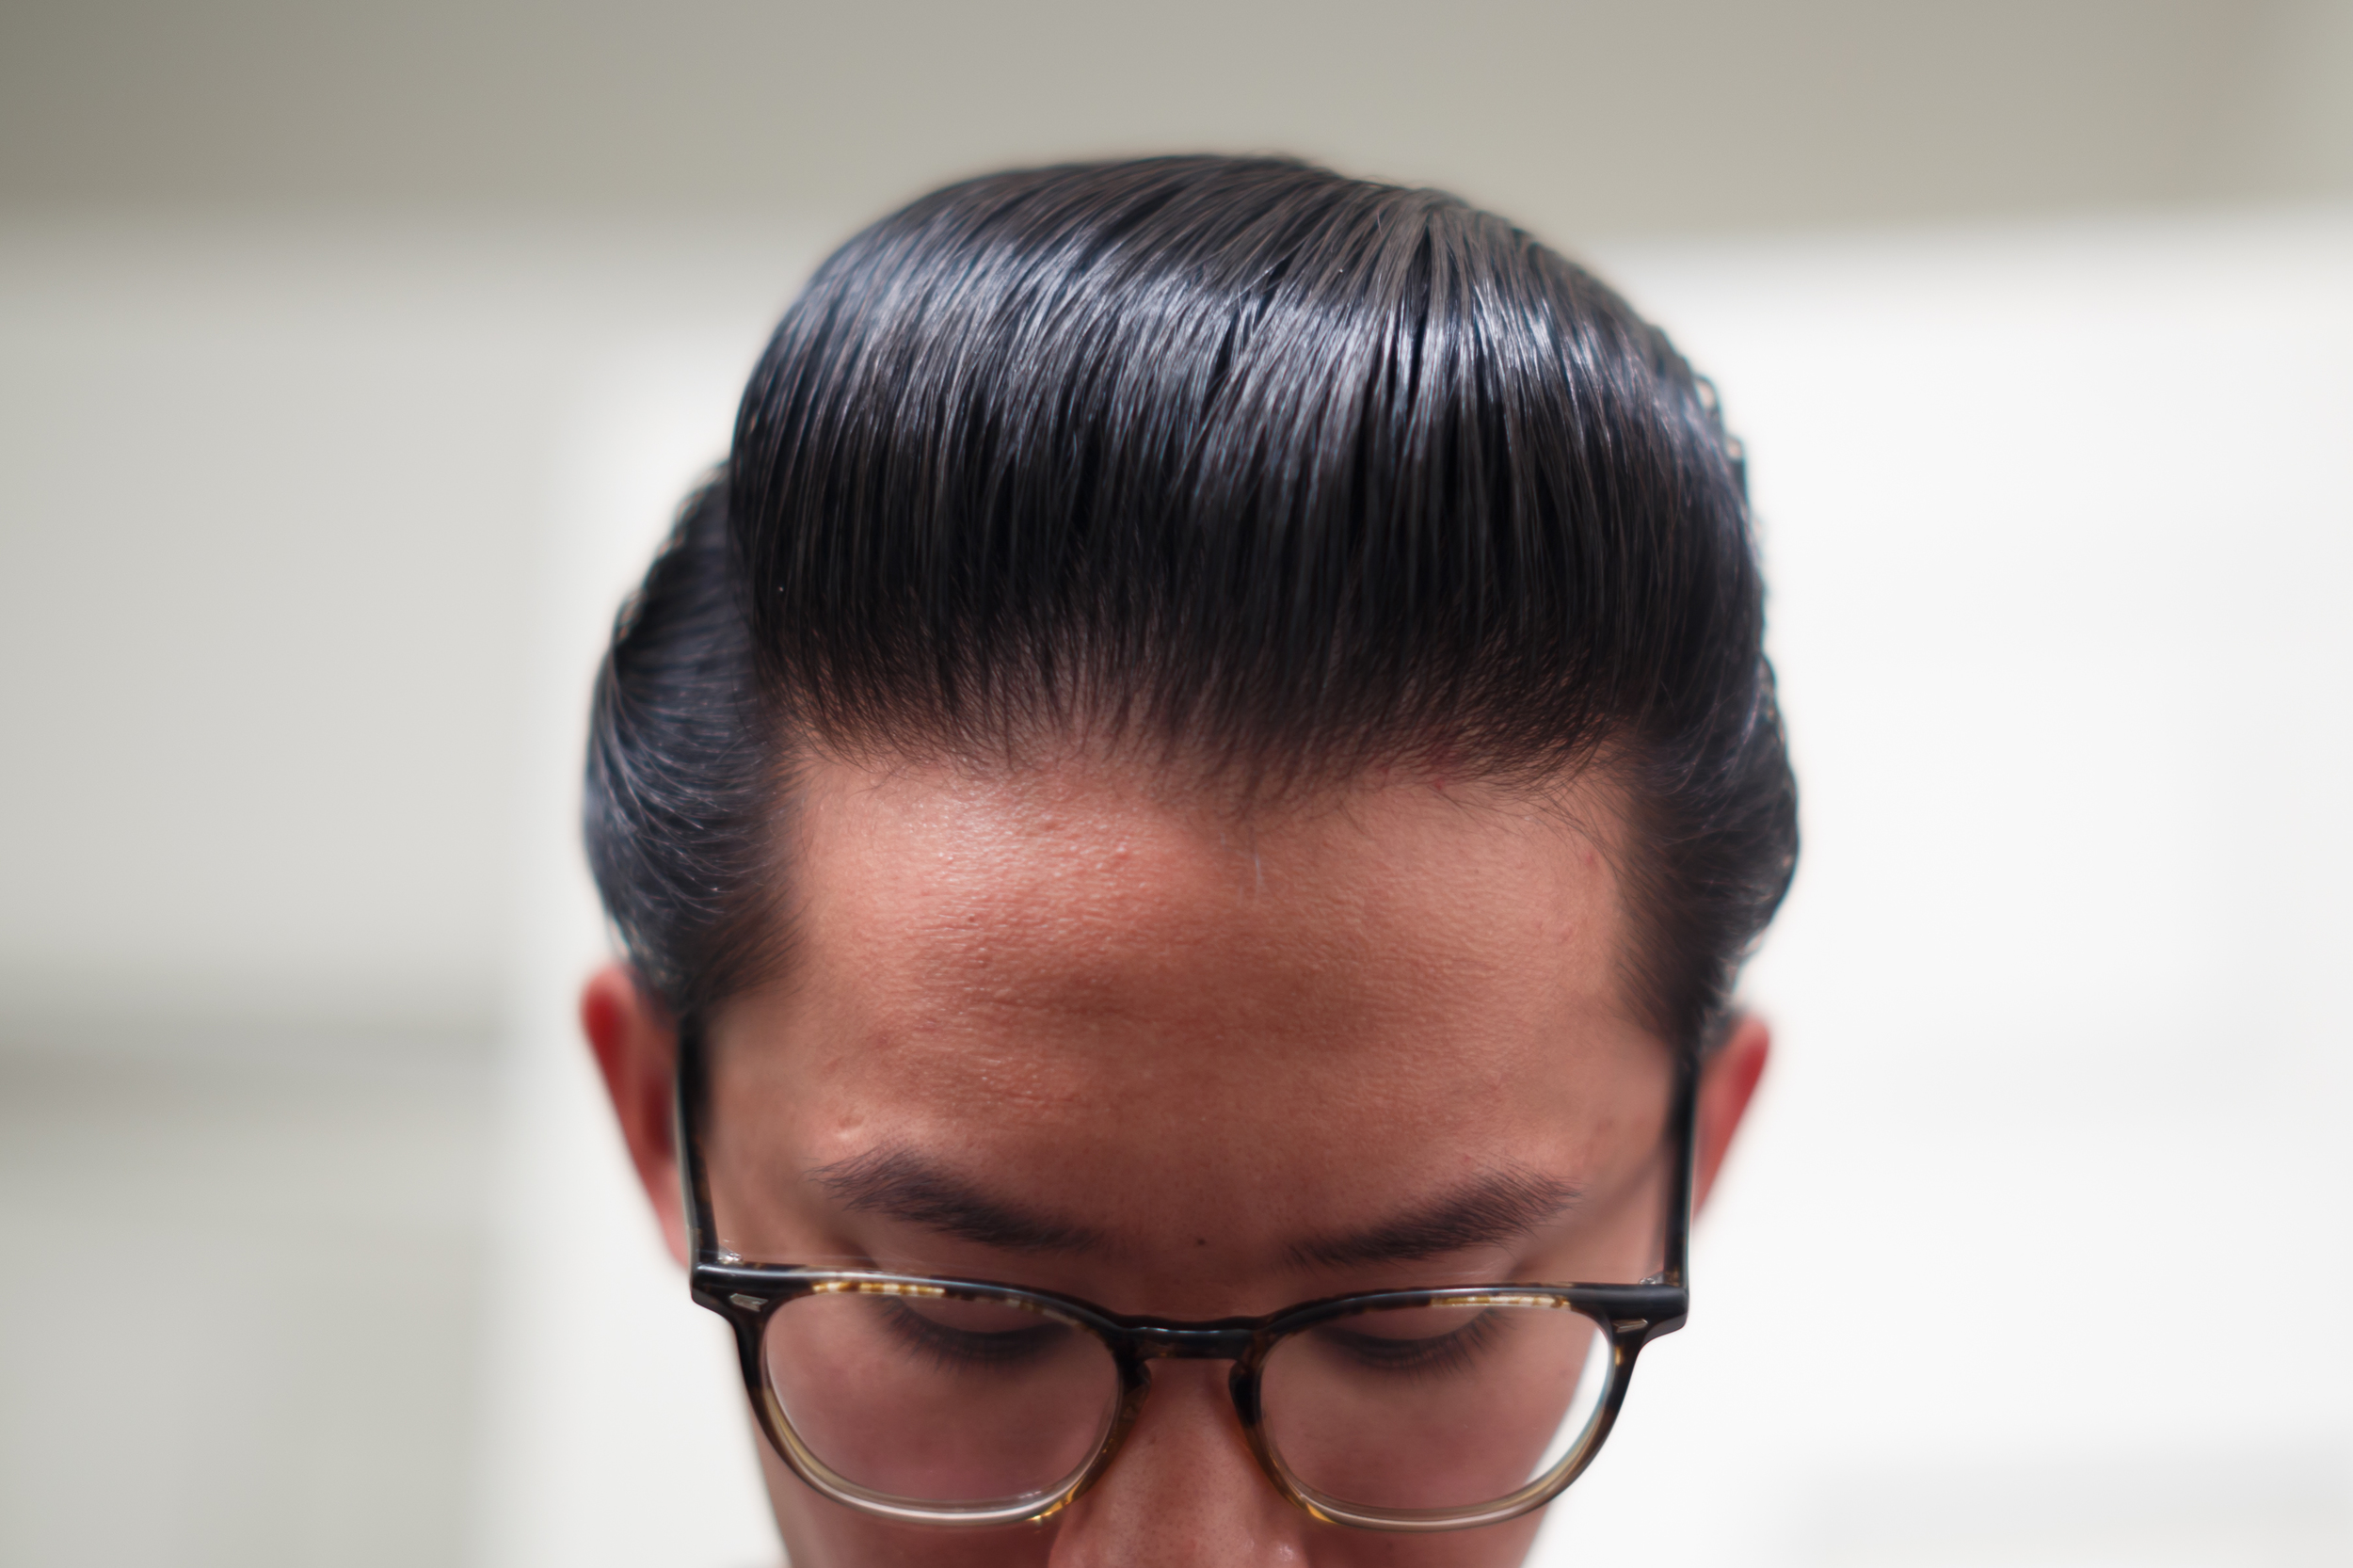 Cool Grease Blue Pomade pomp